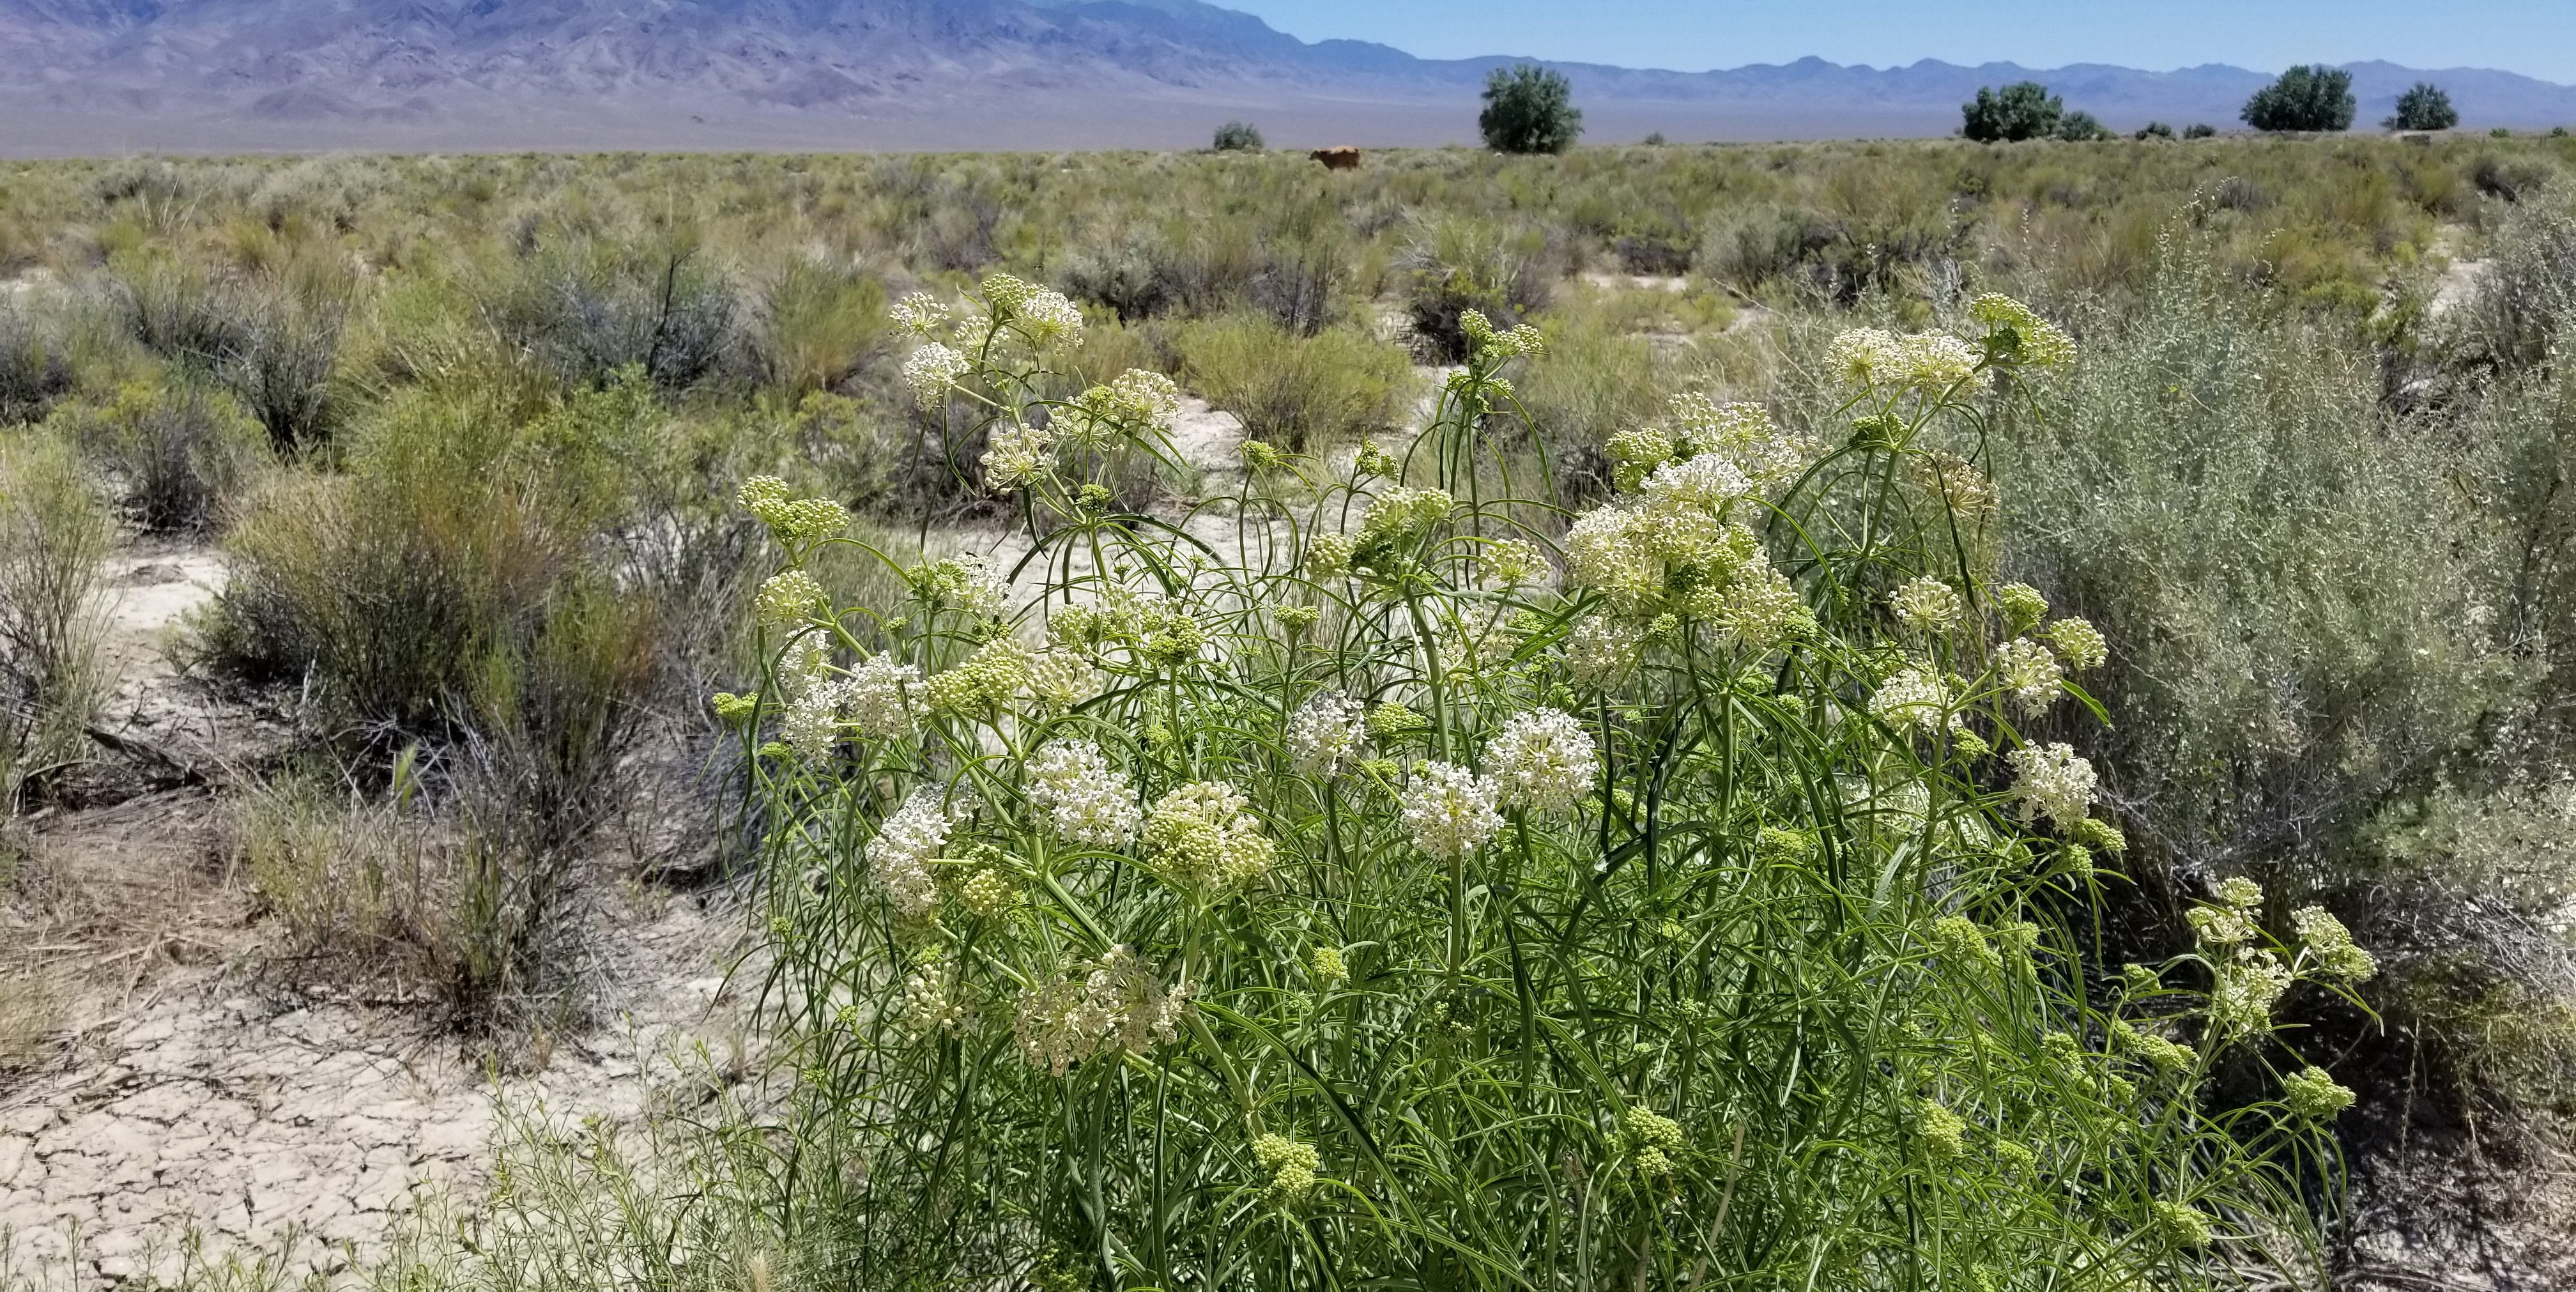 White milkweed flowers blossom in the foreground of an arid rangeland scene, dotted with shrubs. In the distance is cattle, and farther yet, some bluish mountains.